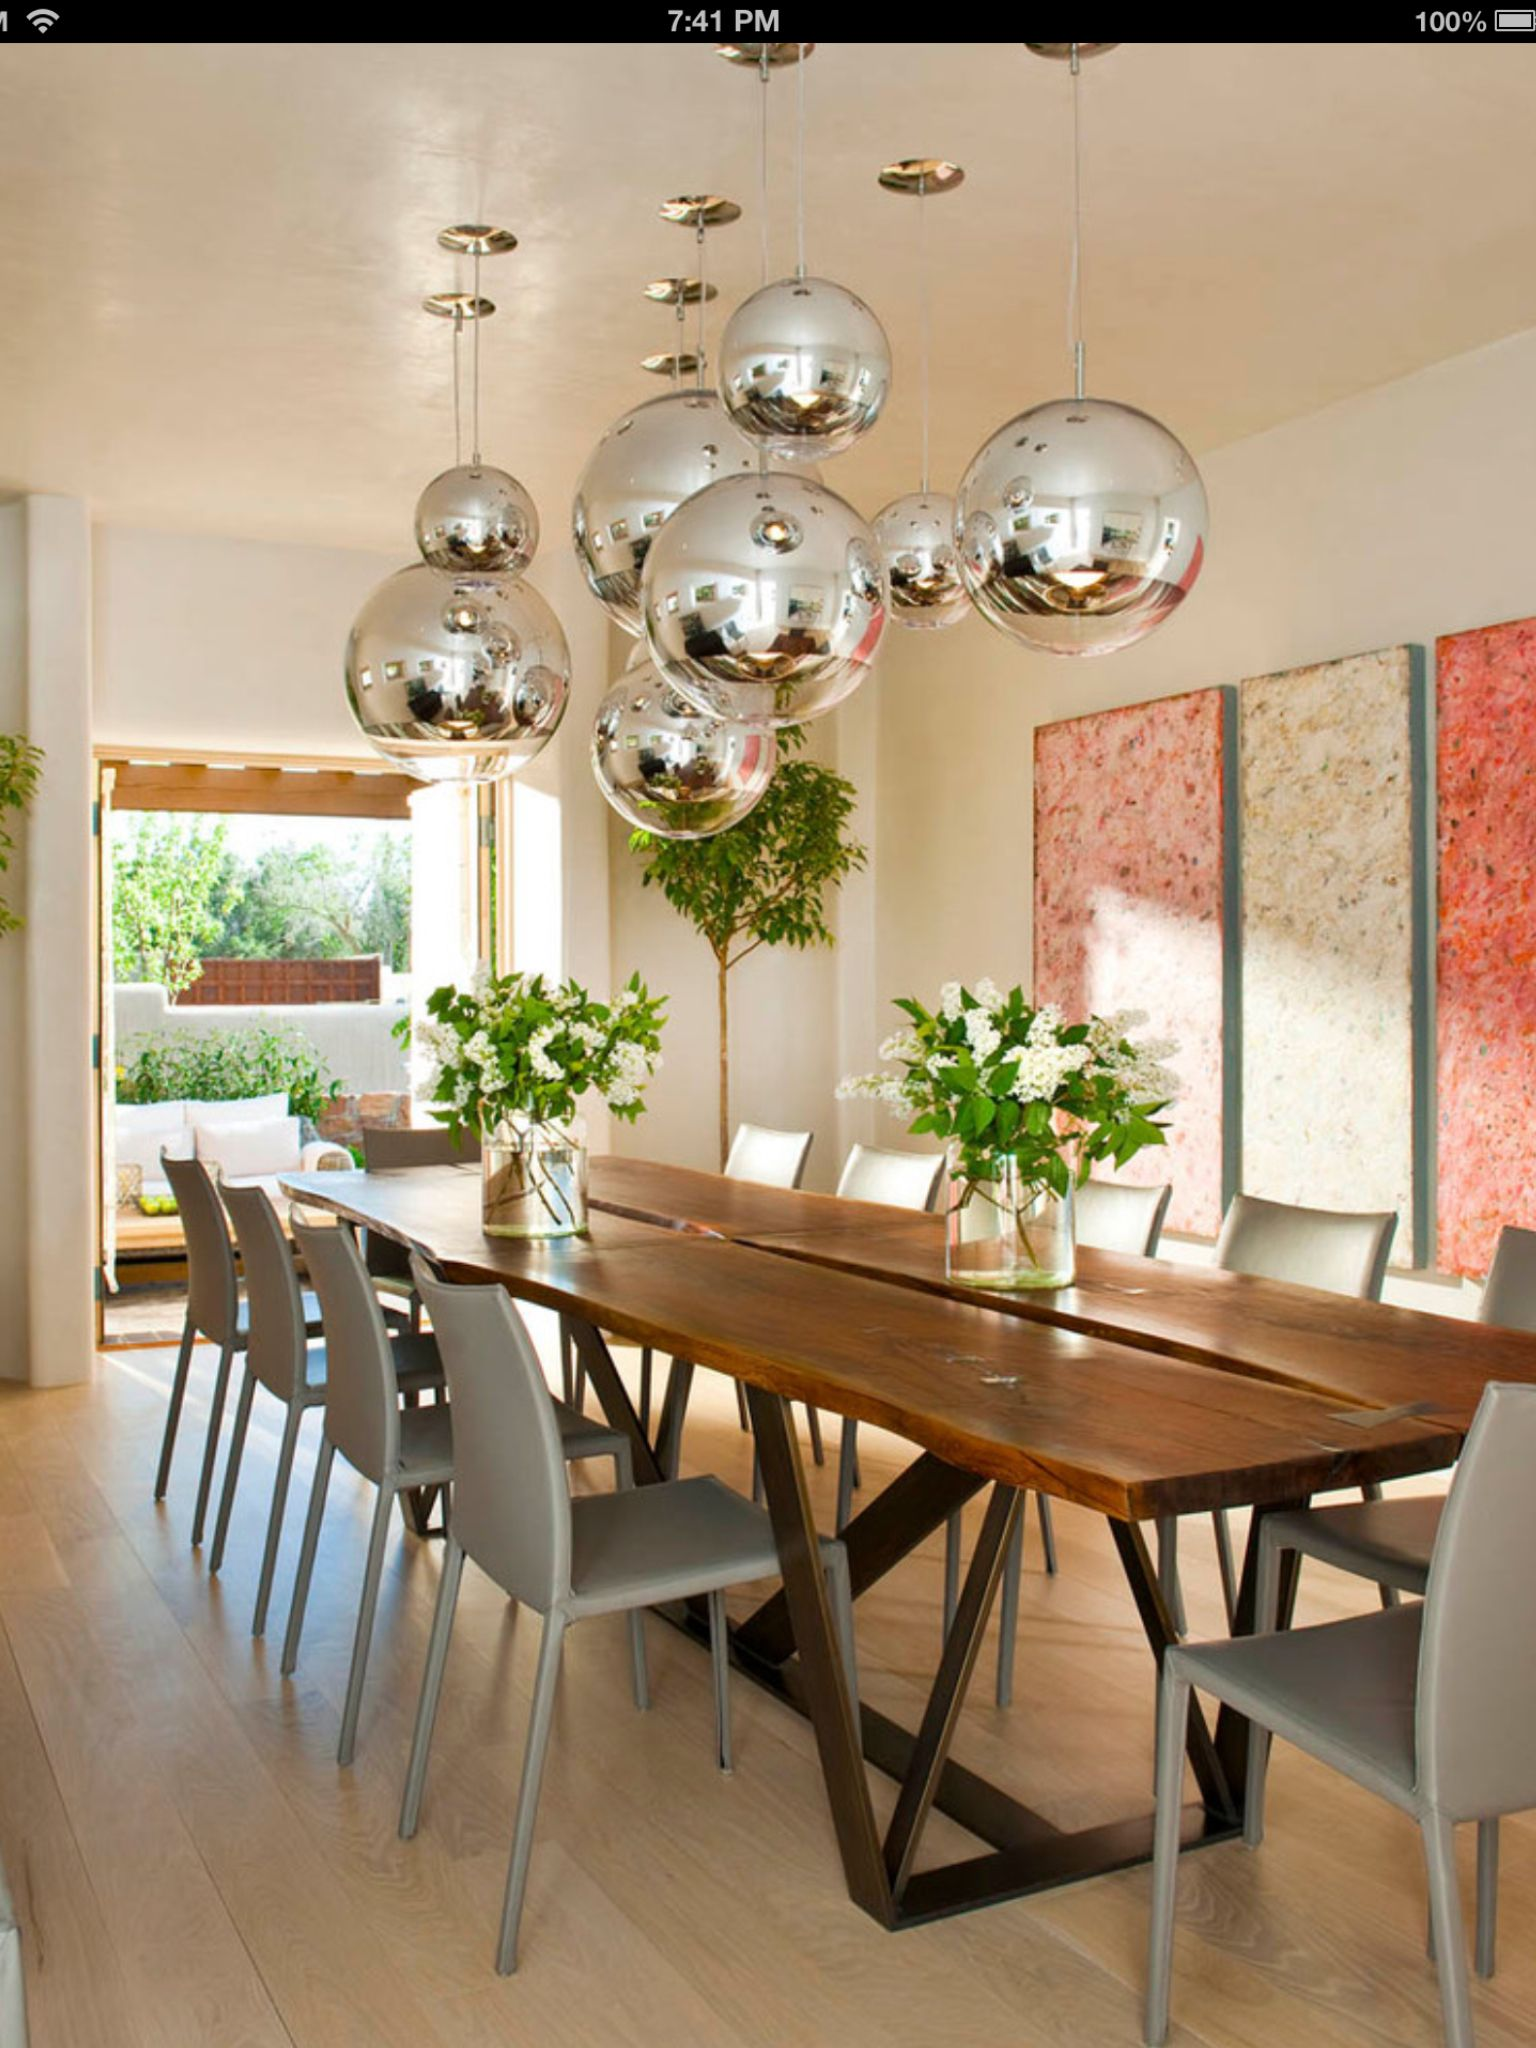 Ball lights diningroom tables chairs chandeliers for Casa moderna light